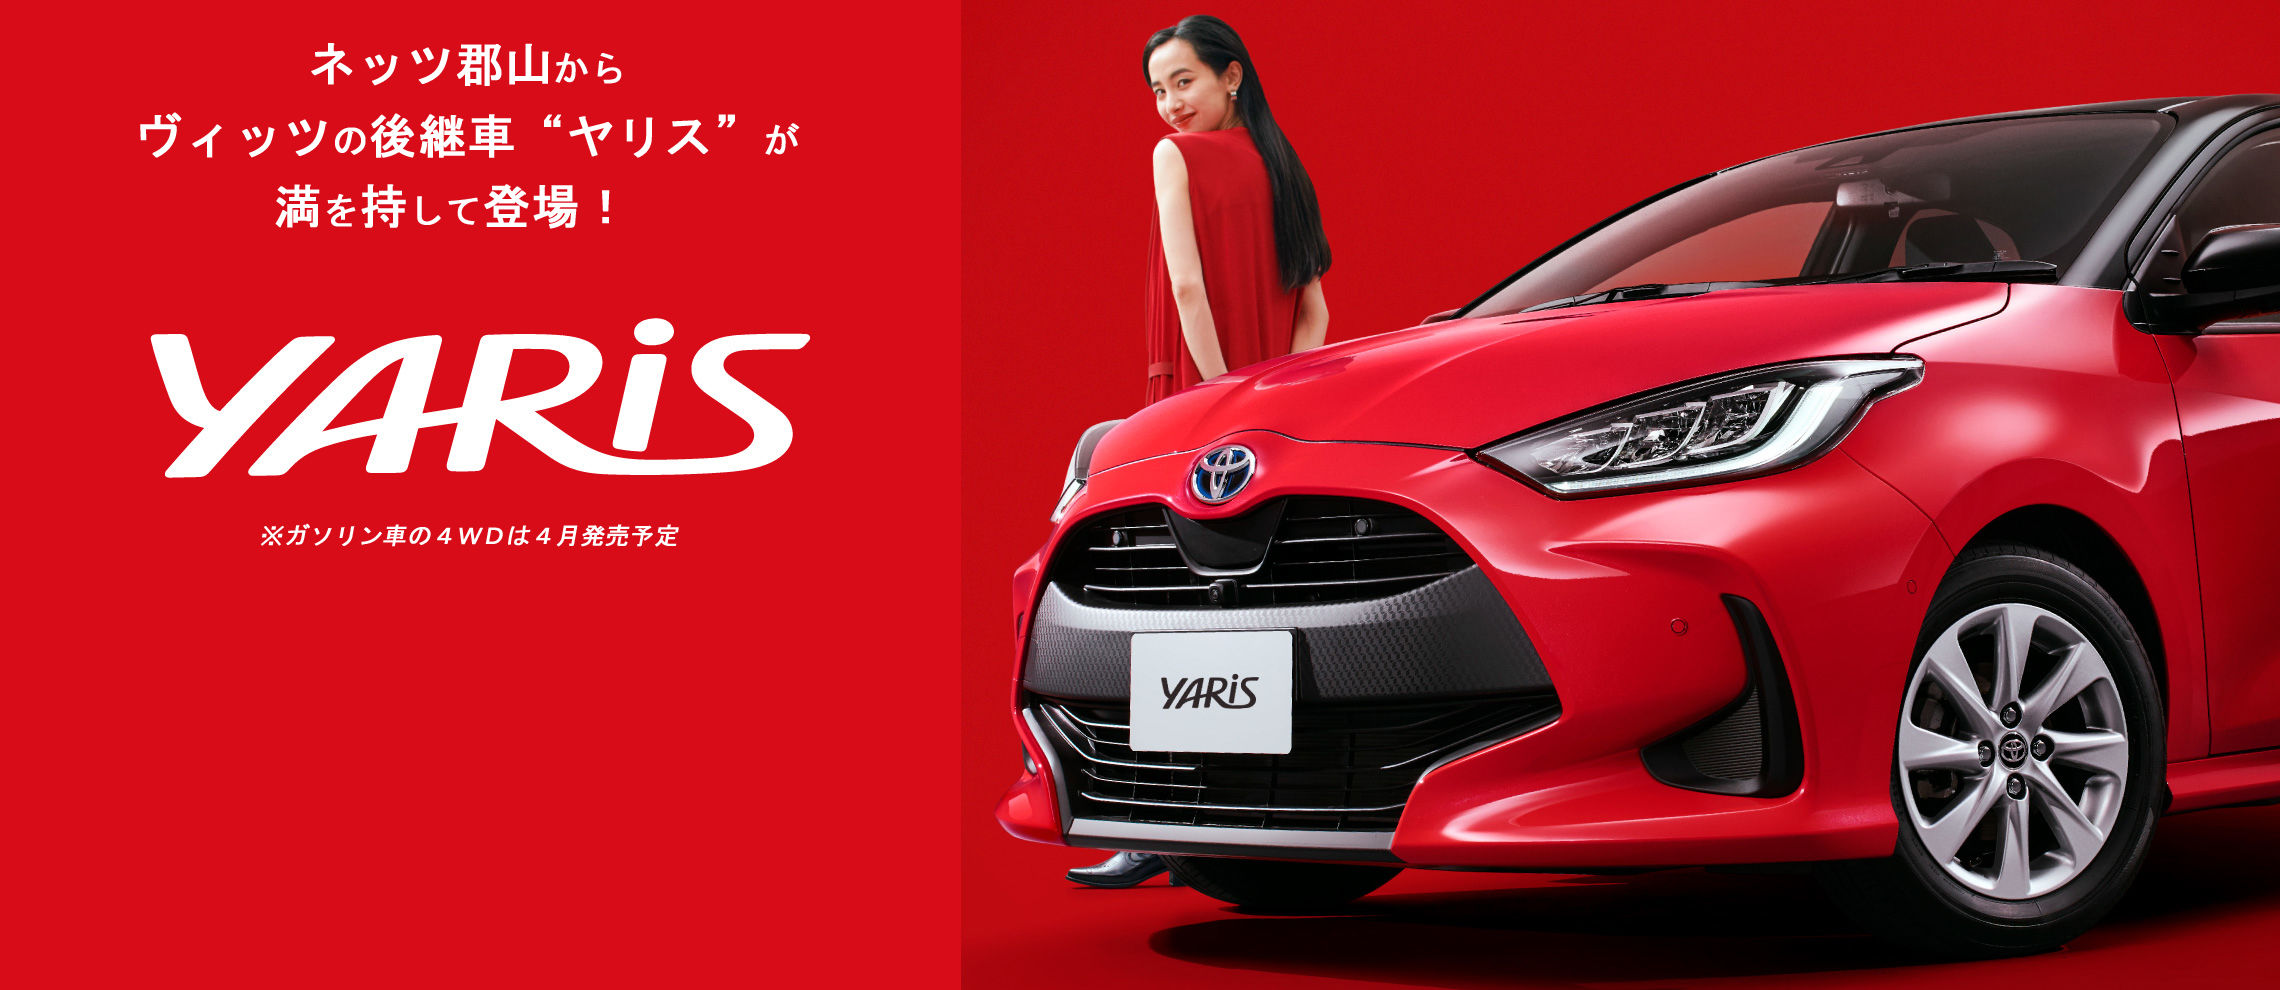 yaris_top_main-3_pc